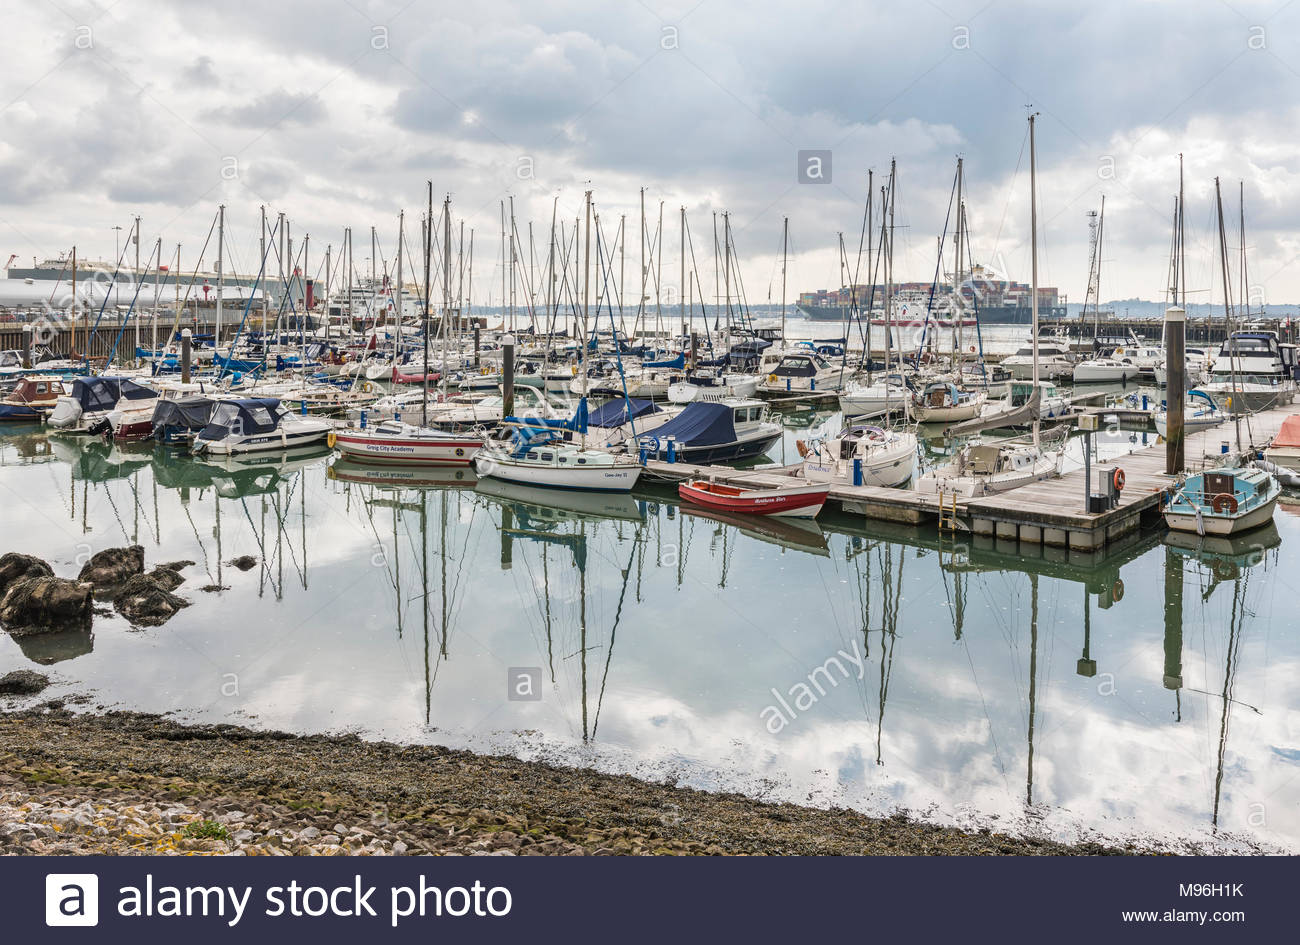 Yachts and boats moored in Town Quay Marina in Winter in Southampton, Hampshire, England, UK. - Stock Image